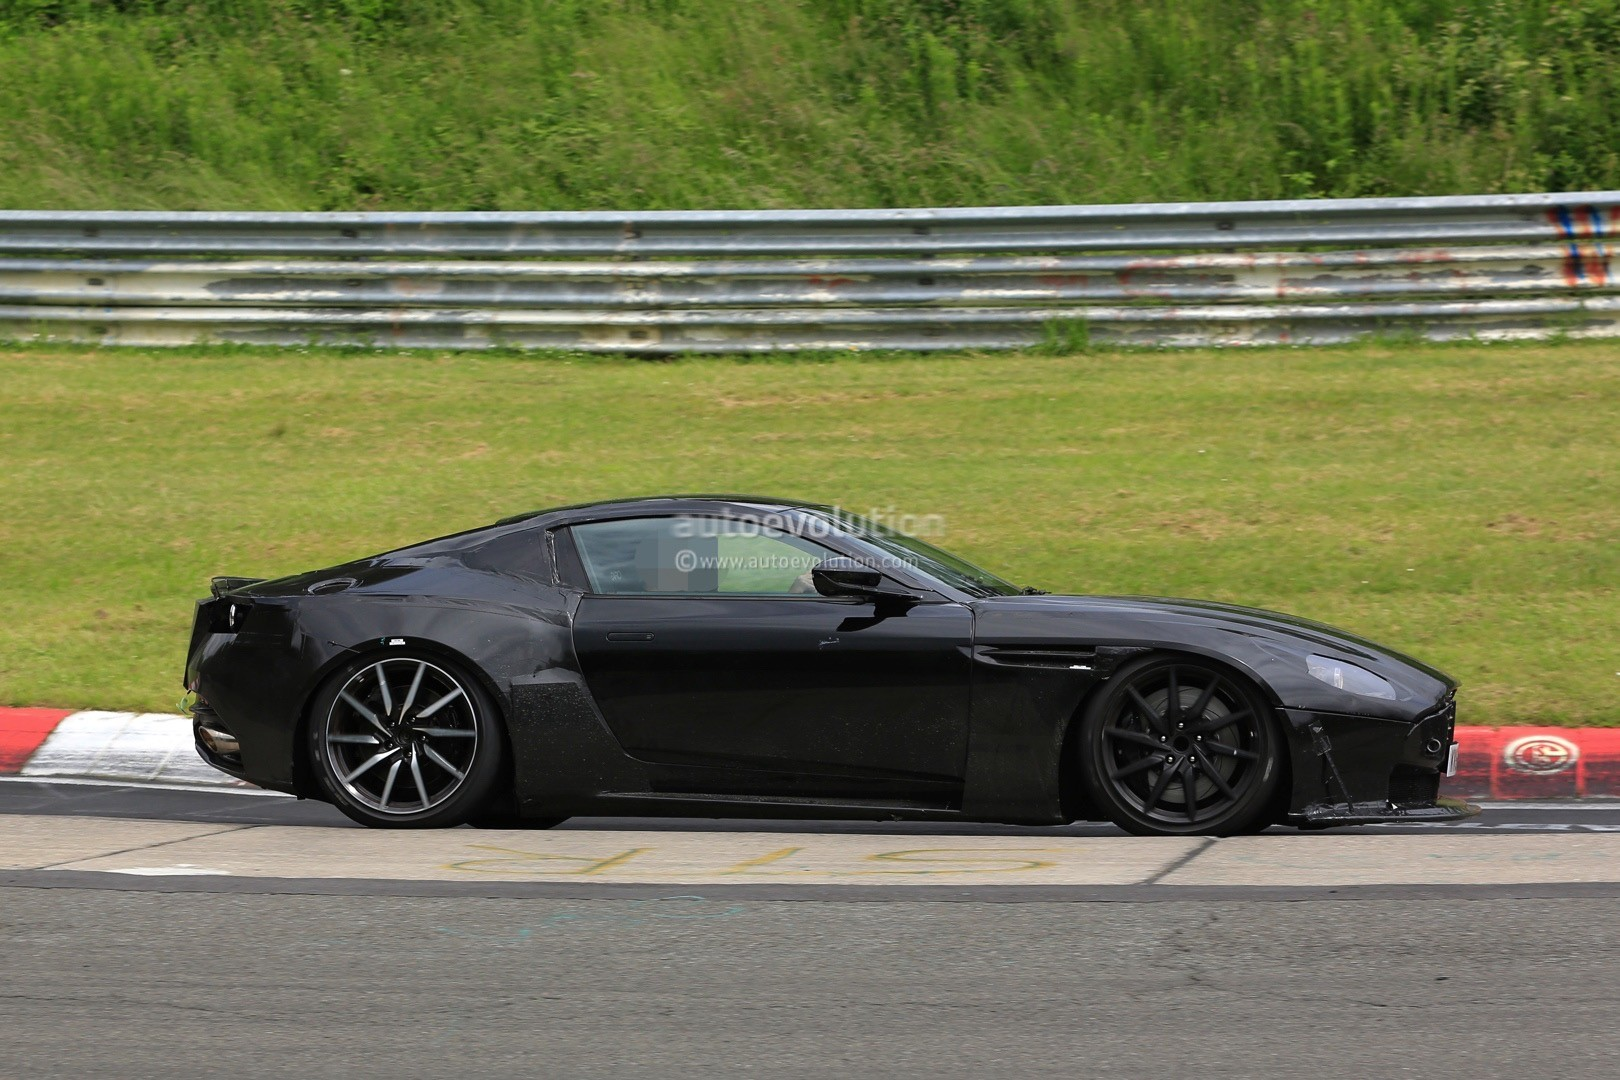 2018 Aston Martin V8 Vantage Design To Be A Cross Between Db10 And